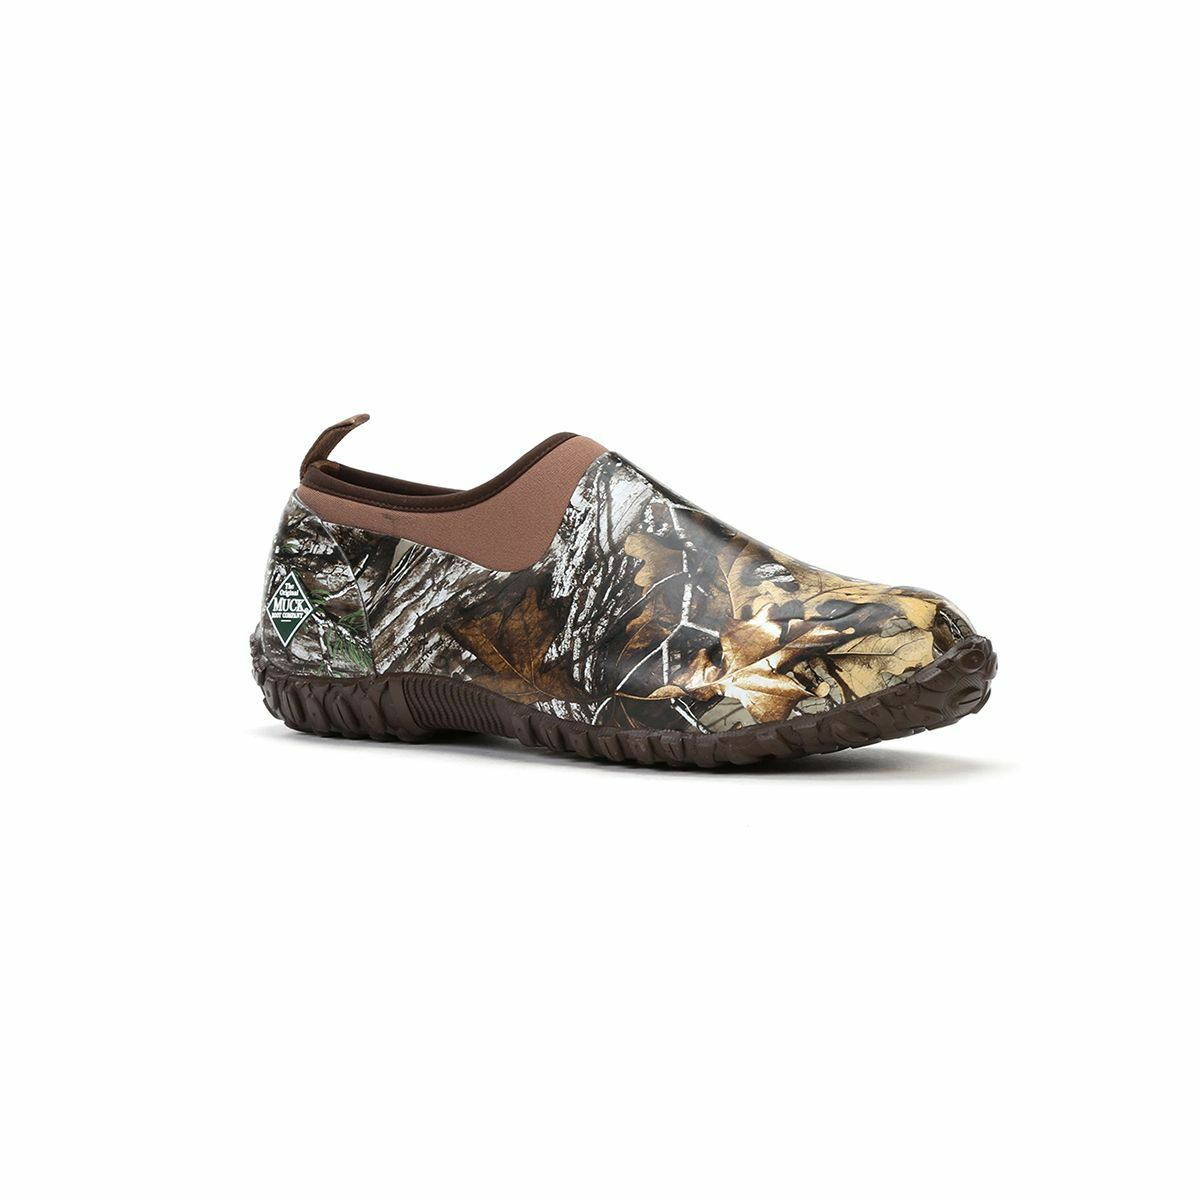 Muck Boot Muckster II Low Realtree Xtra-Mens Size 7 Casual Sneakers